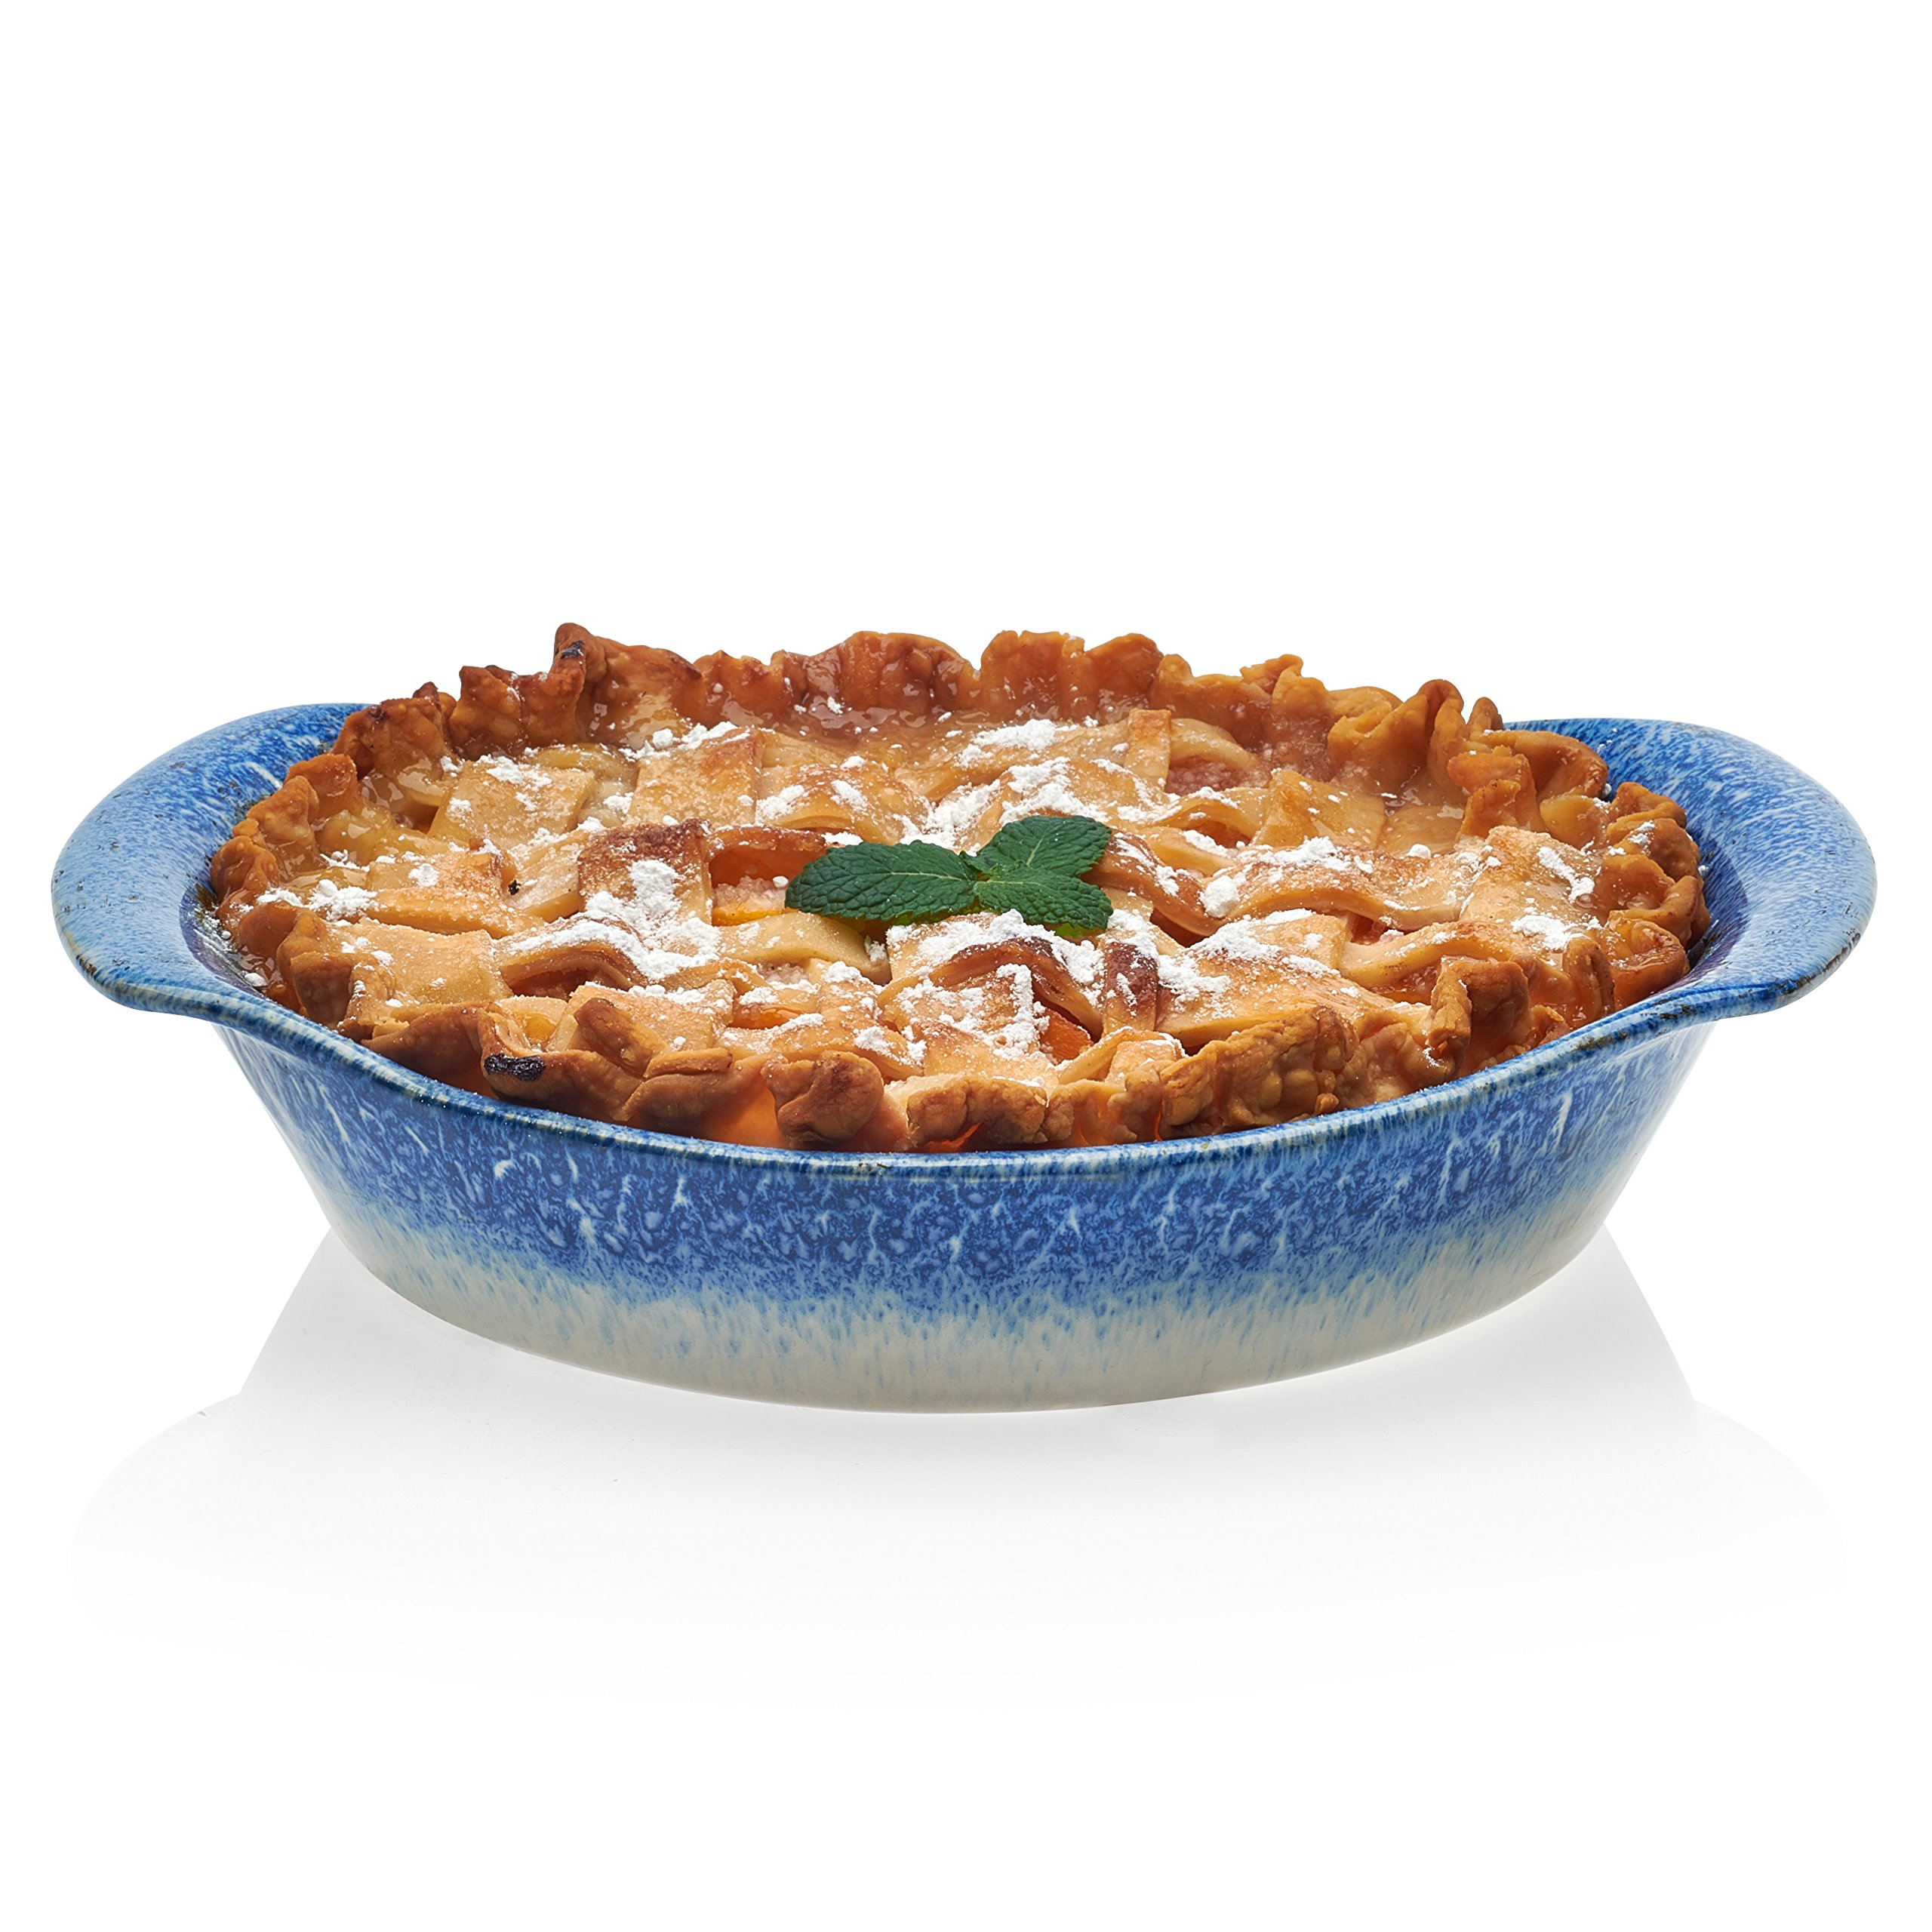 Libbey Artisan Stoneware Pie Plate, 9.5-inch by Libbey (Image #1)